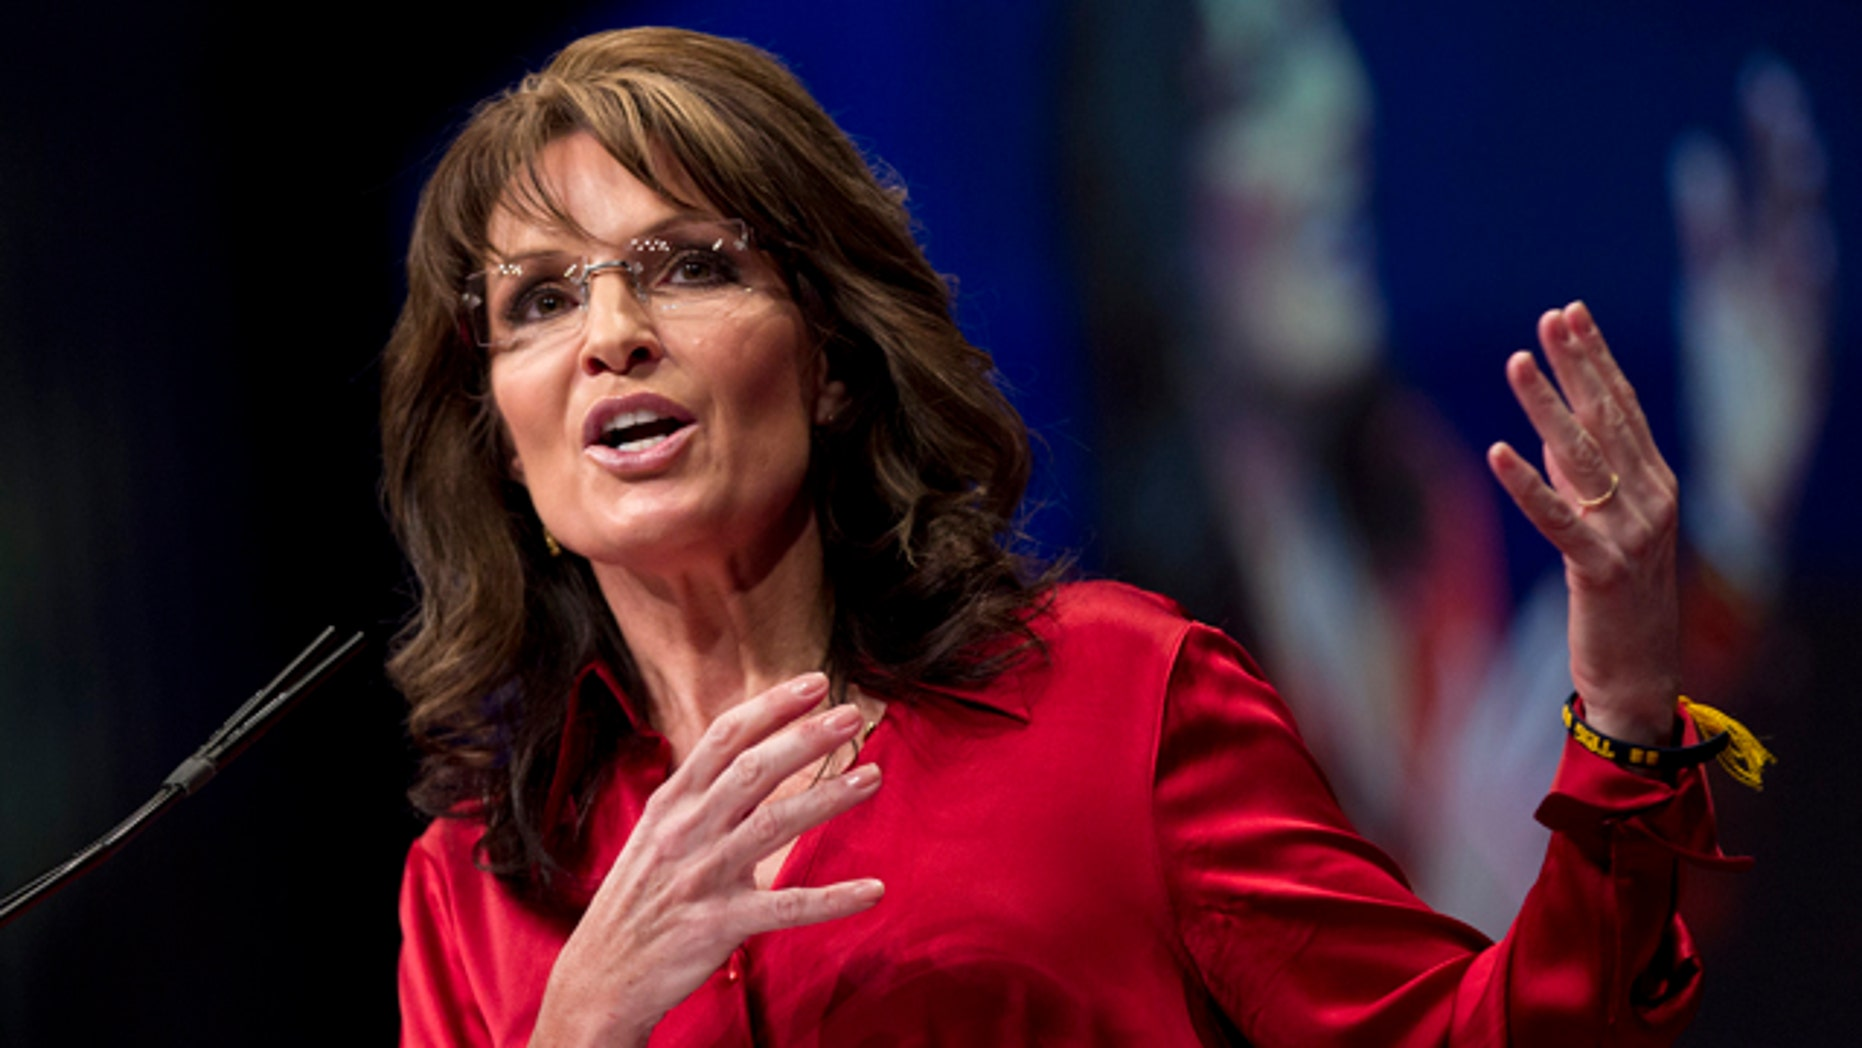 Feb. 11, 2012: Sarah Palin, the GOP candidate for vice-president in 2008, and former Alaska governor, delivers the keynote address to activists at the Conservative Political Action Conference (CPAC) in Washington.